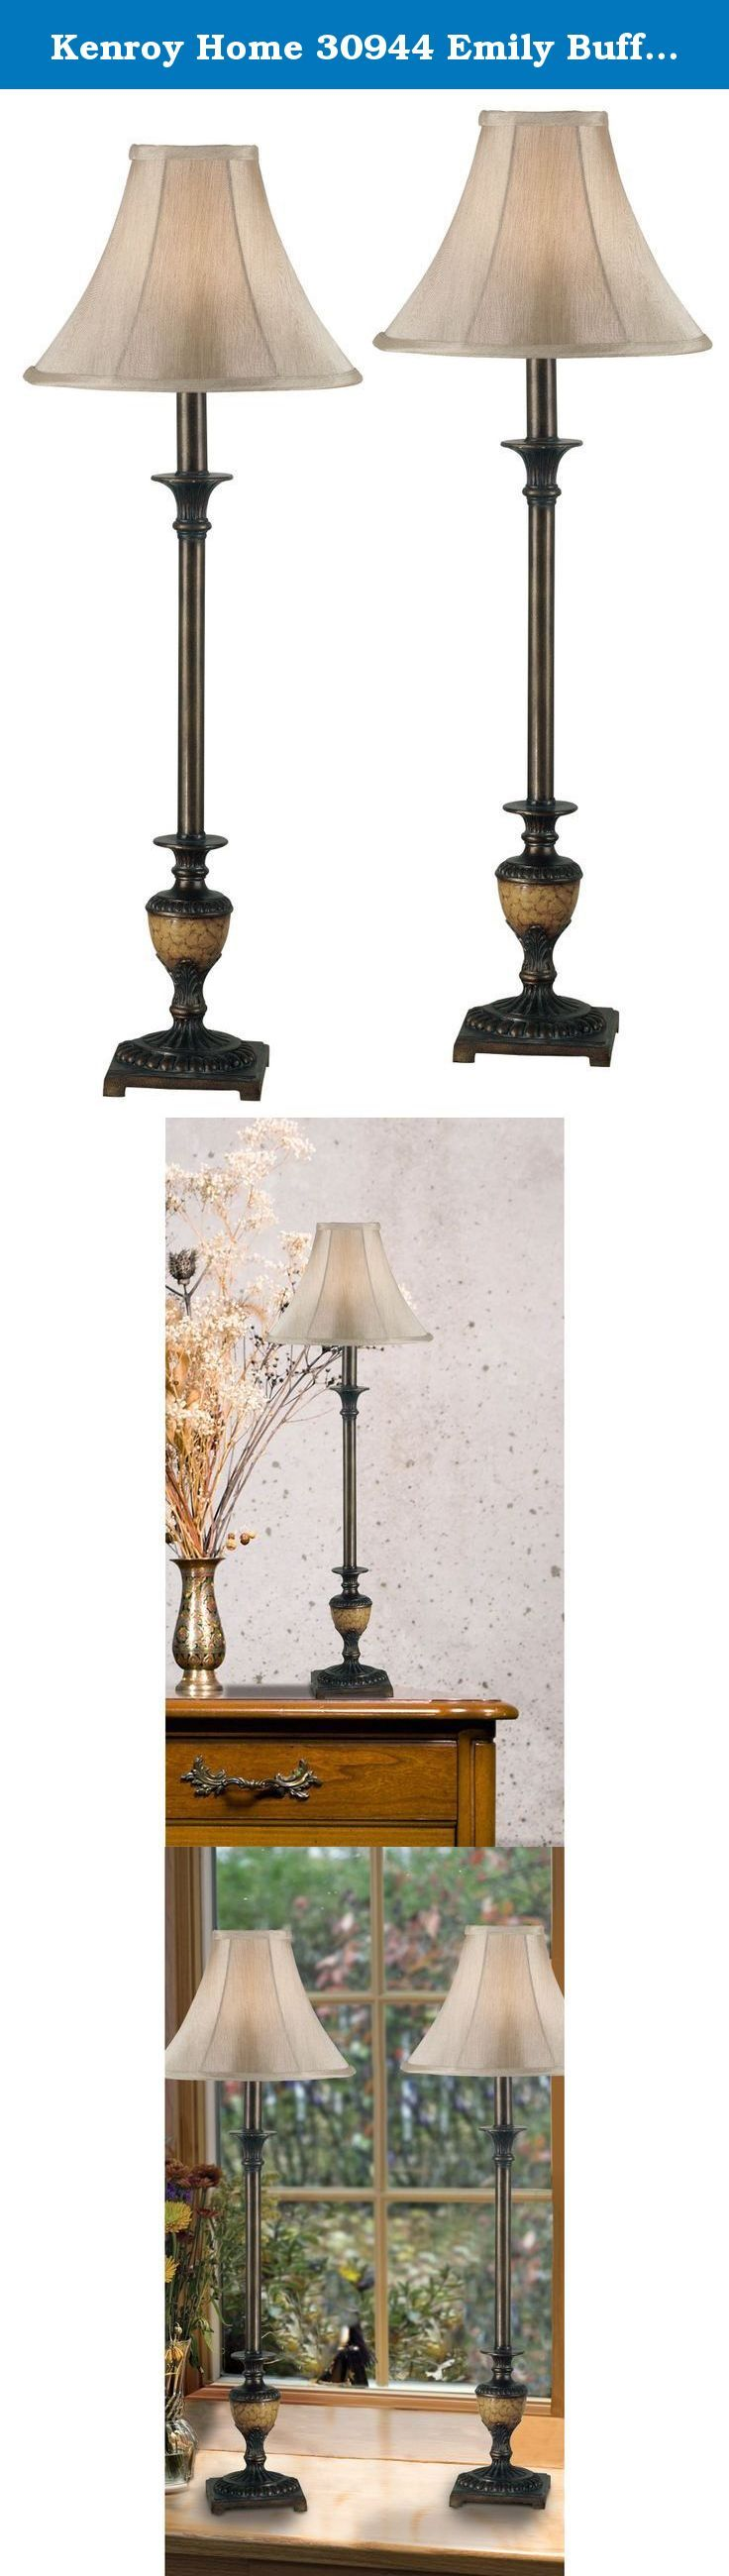 Kenroy Home 30944 Emily Buffet Lamp, 2 Pack, Crackle Bronze. Add warmth and elegance to your dining room sideboard with these Victorian inspired buffet lamps, featuring tapered bases in a warm crackle bronze tone finish and graceful bell shaped shades. Ideal for a formal dining room, the lamps are sold in a set of two. Set of 2. 11 in. diameter Light Gold Bell Shade. Crackle Bronze finish. Requires 1-60 Watt Medium Base Bulb, On/Off Switch, Not Included. Assembly required. 11 in. Dia. x…